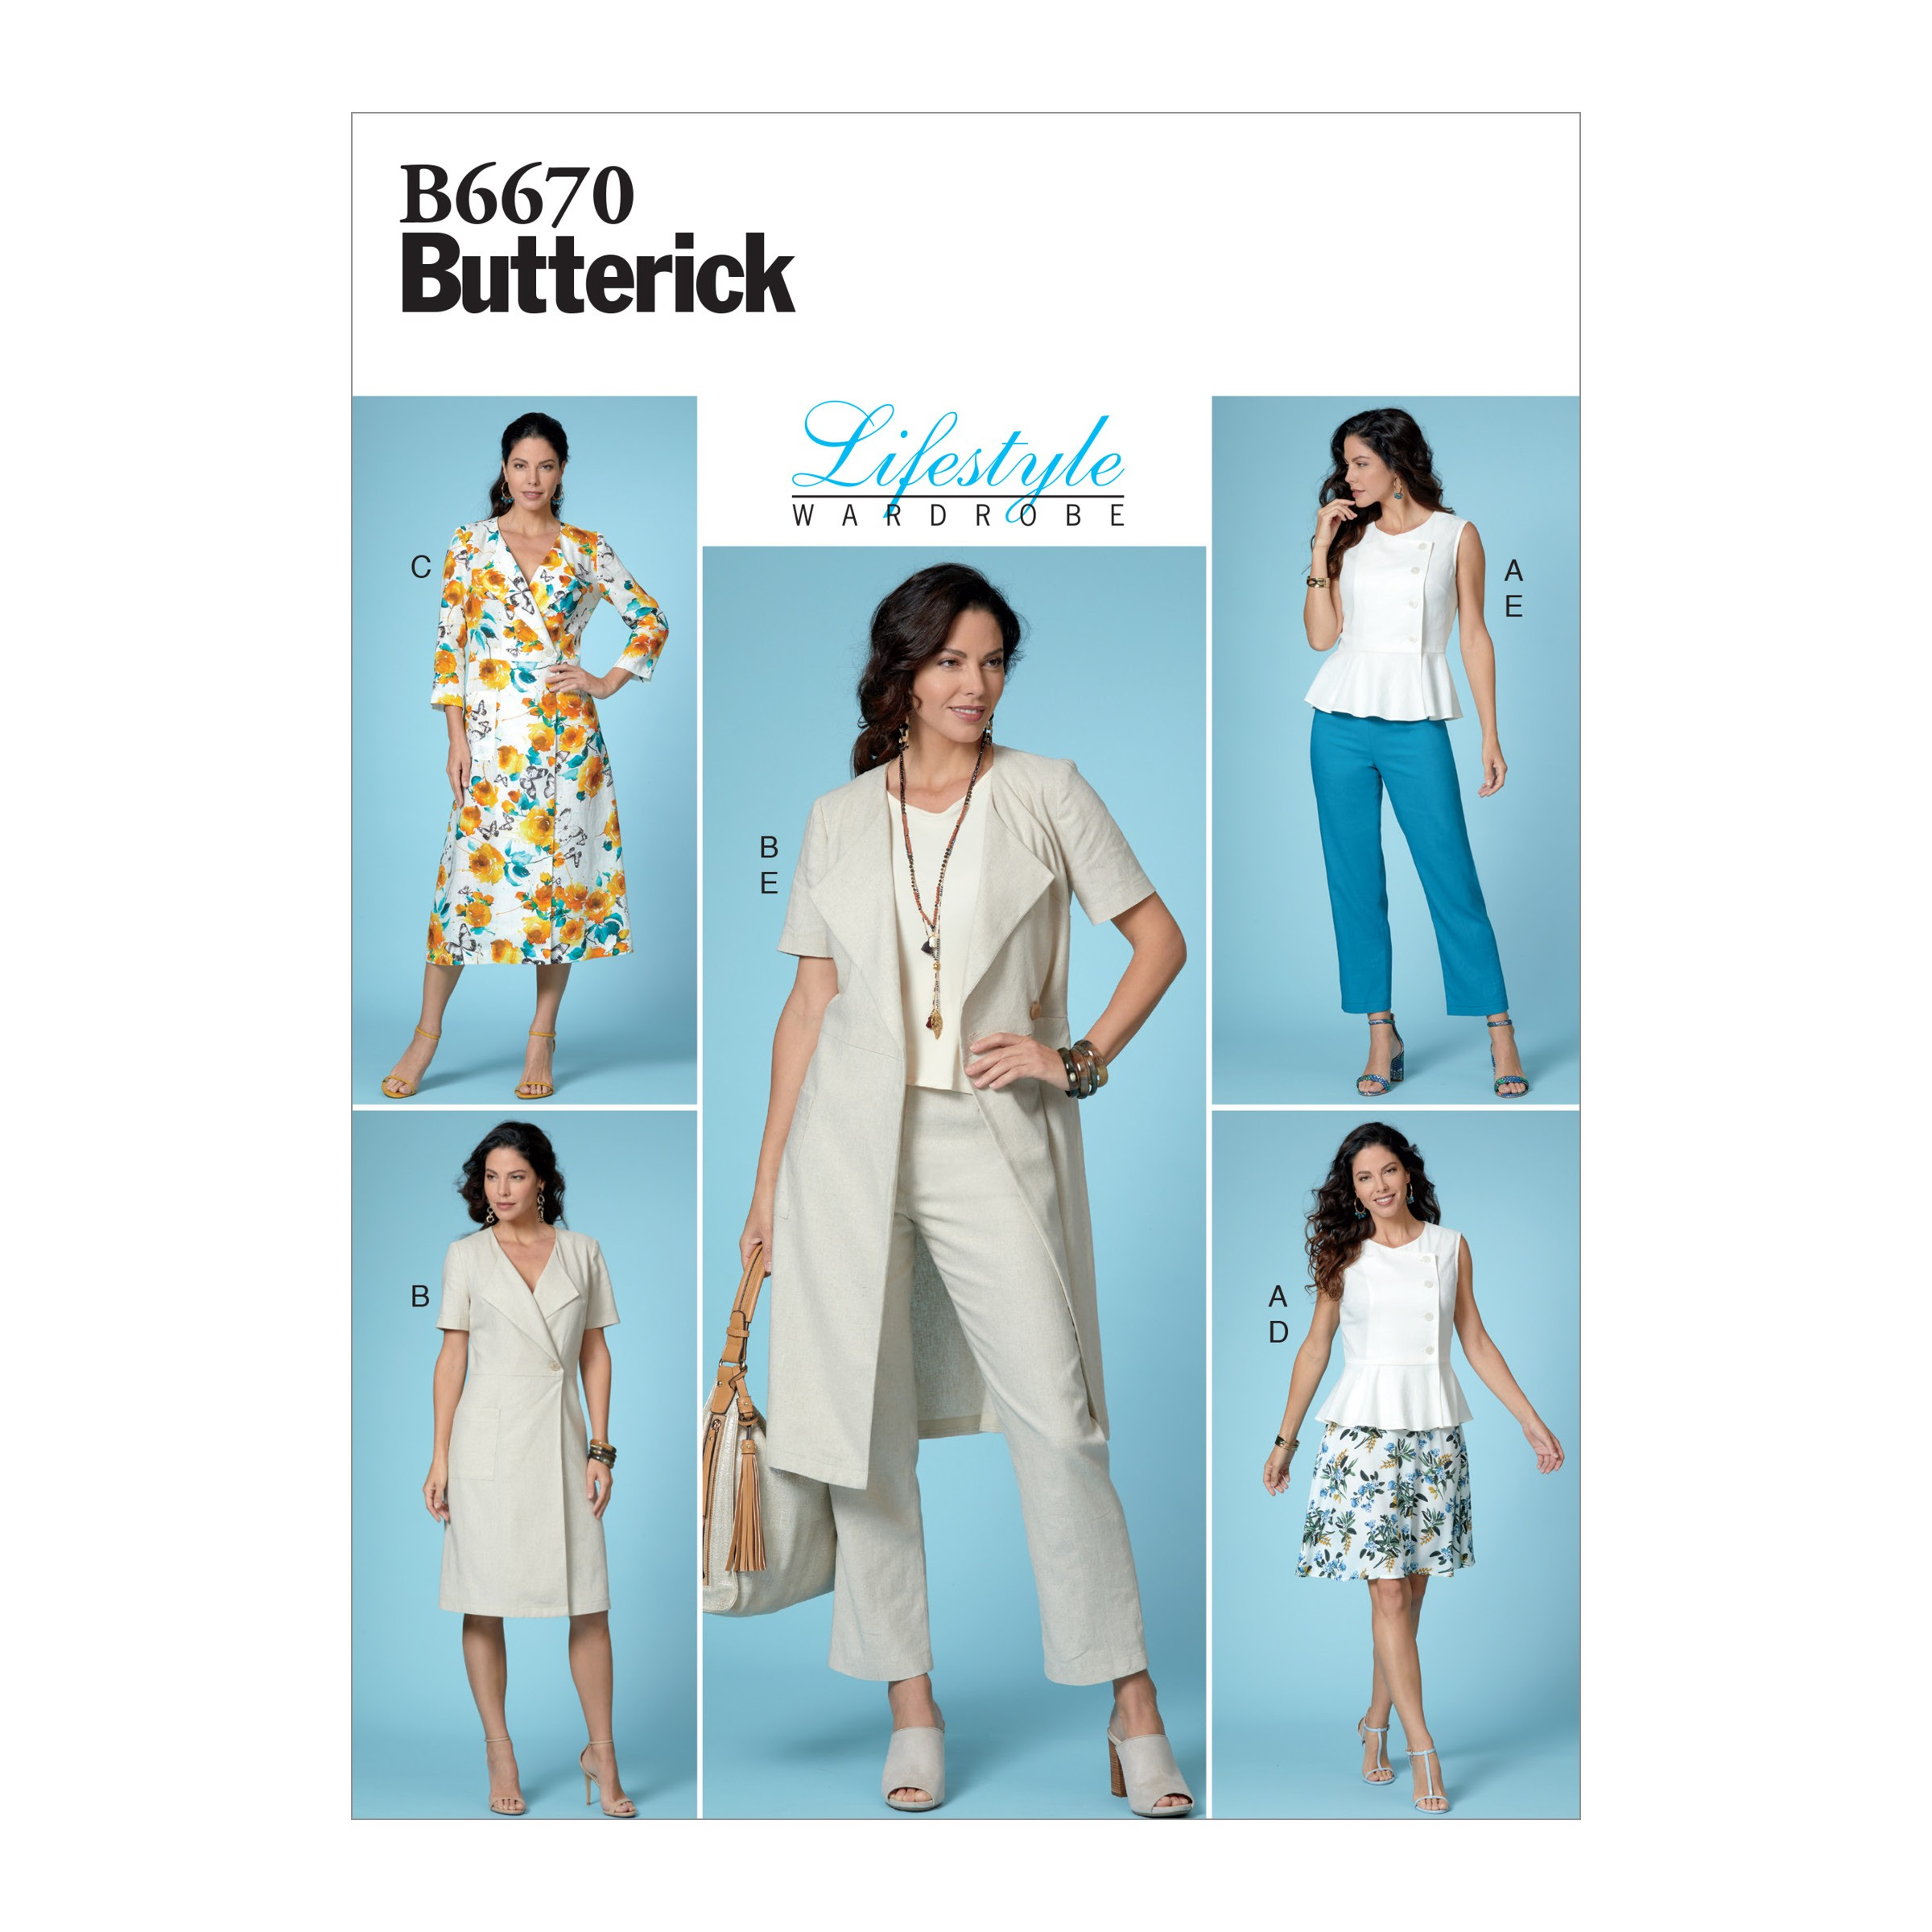 Butterick Sewing Pattern 6670 Misses' Button-Front Top and Dress